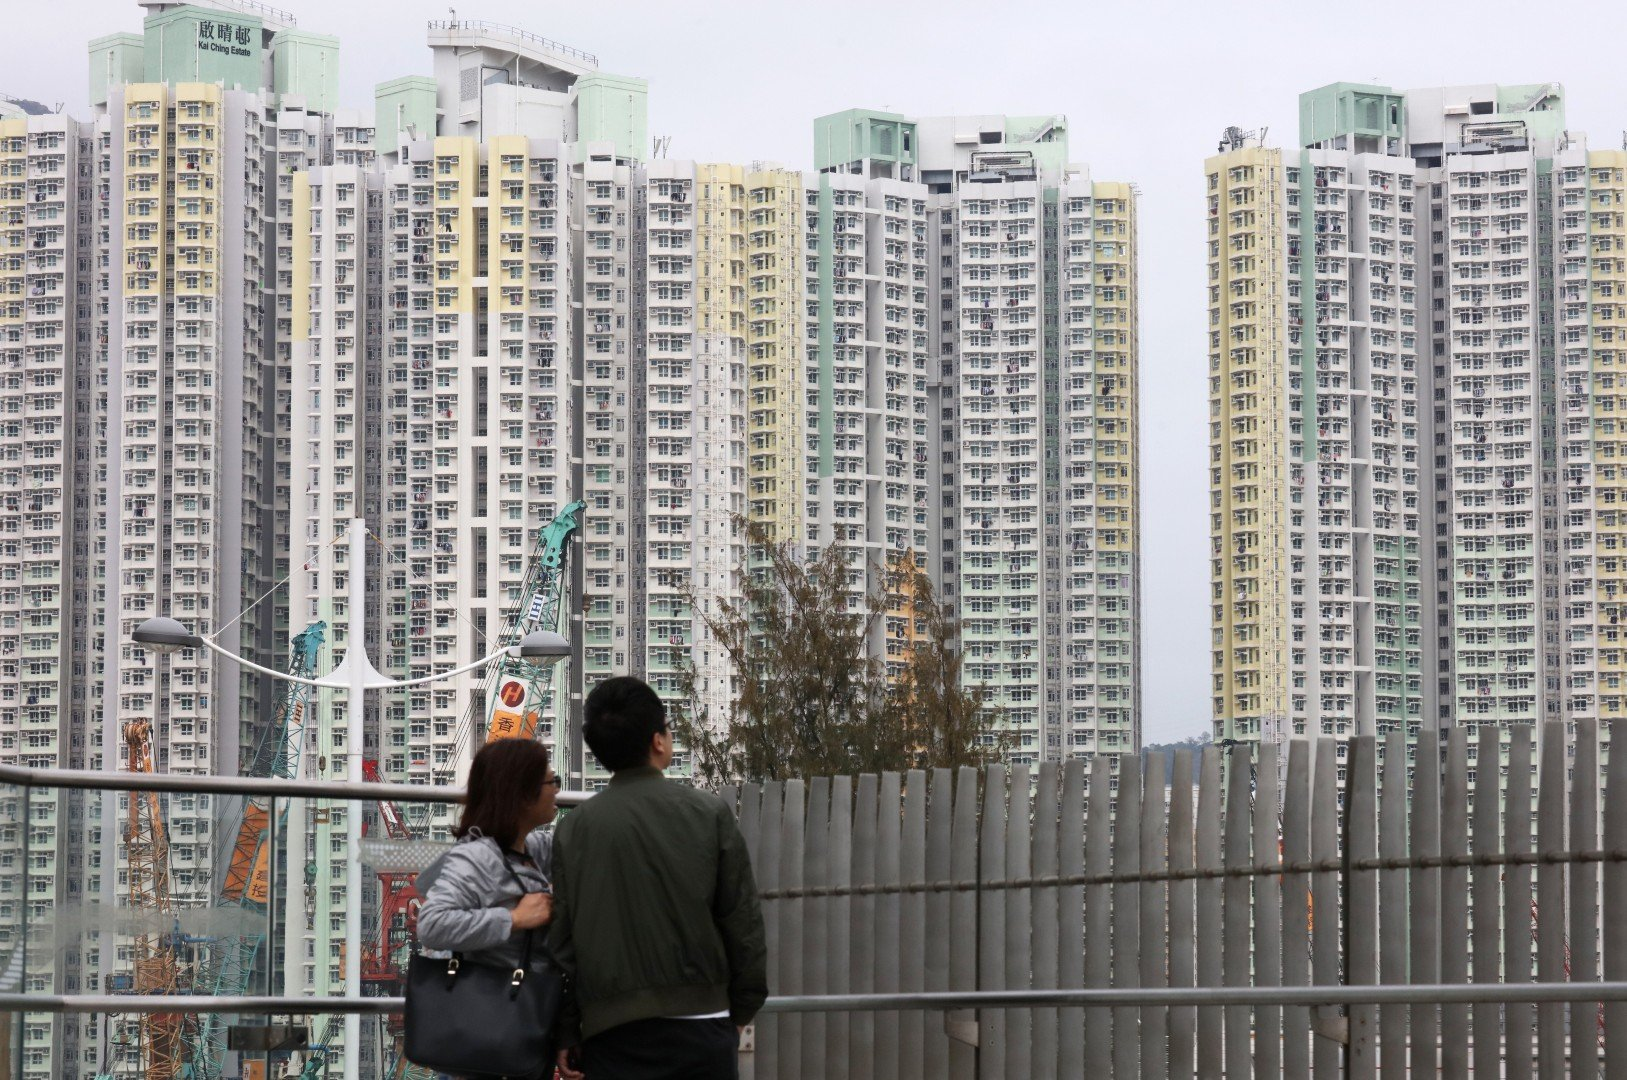 More young, single and highly educated Hongkongers on